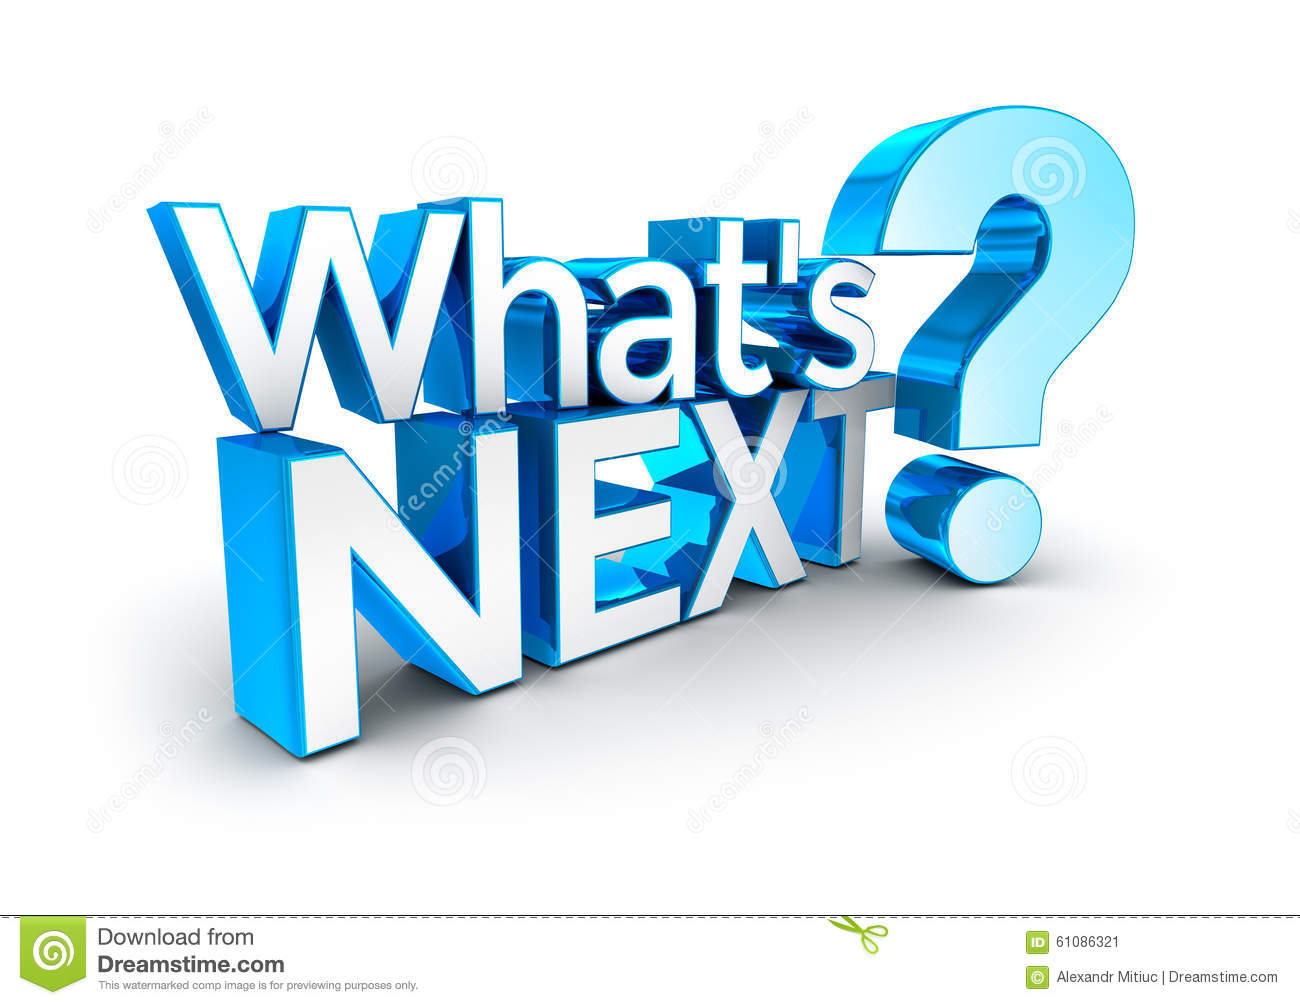 Whats next text stock illustration image 61086321 for What s a solid